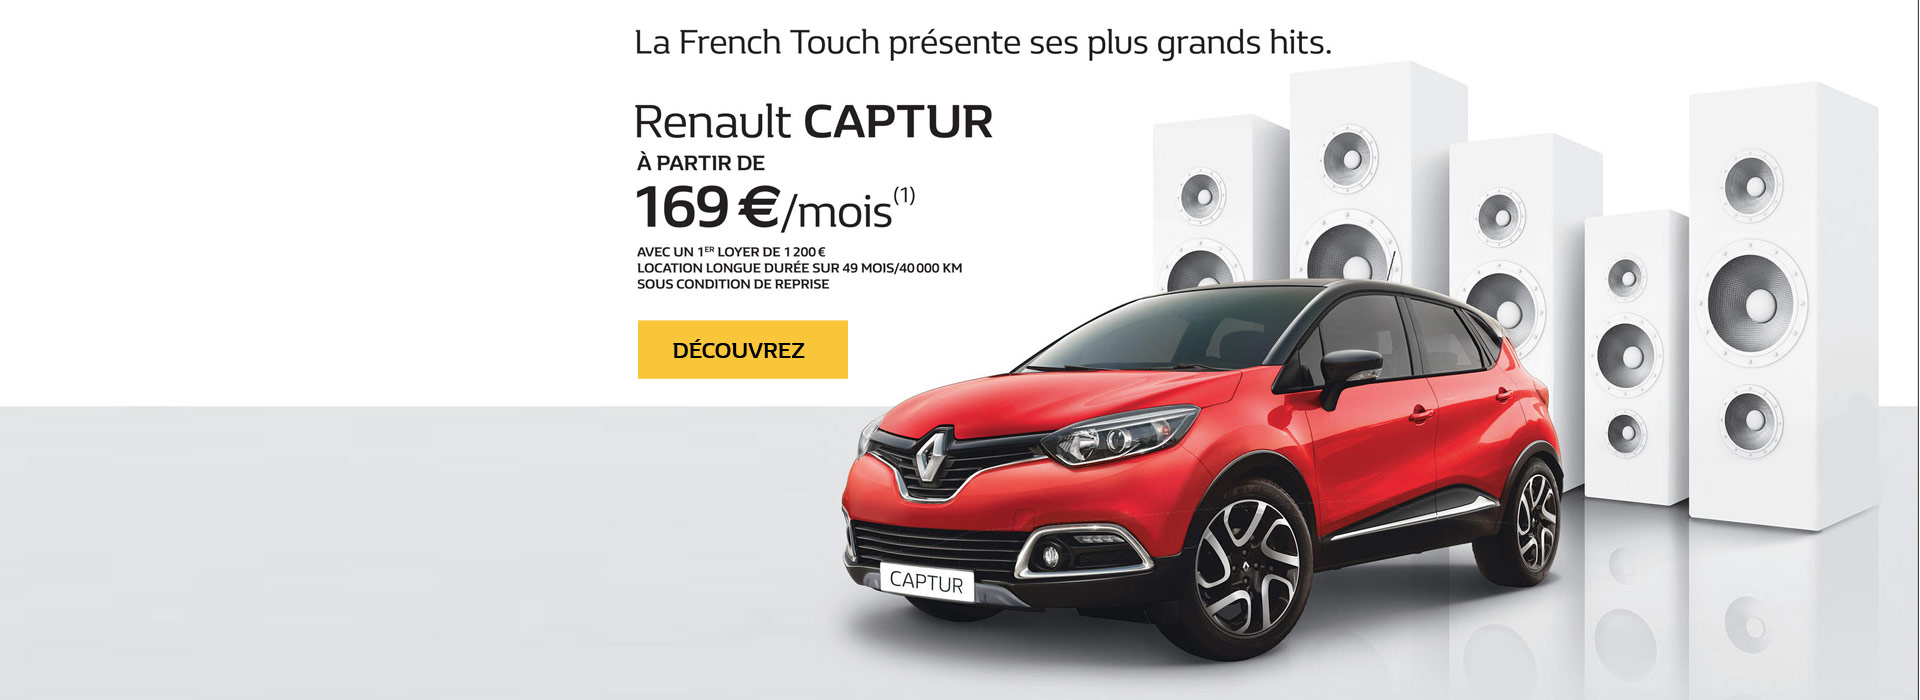 renault captur renault annemasse. Black Bedroom Furniture Sets. Home Design Ideas